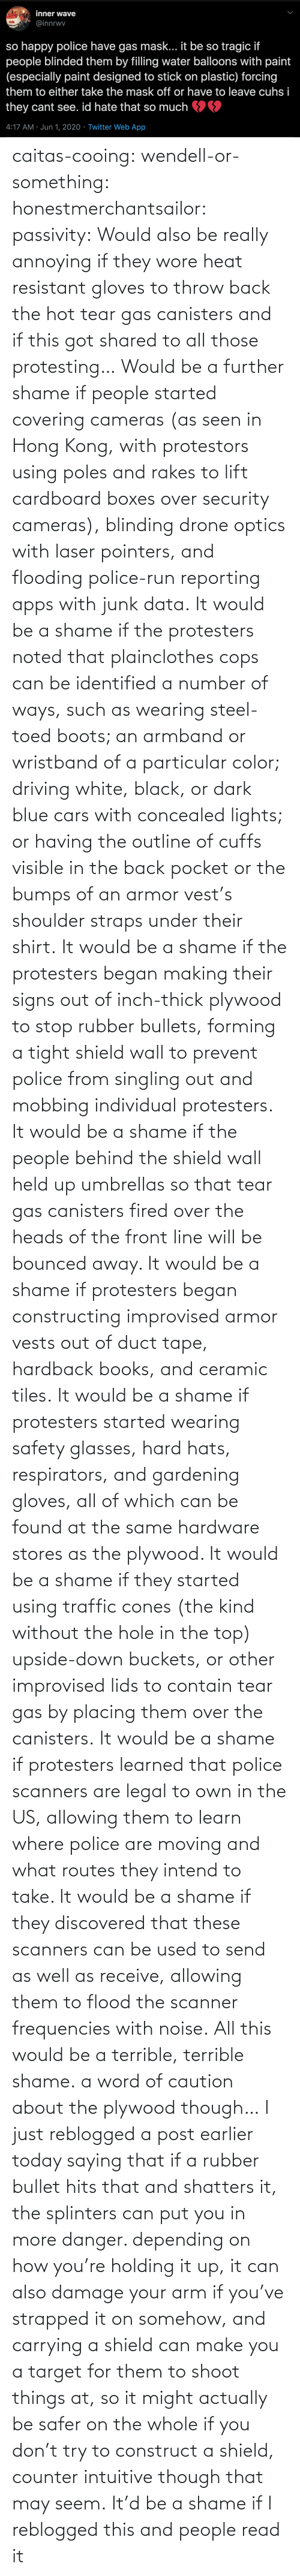 Held: caitas-cooing:  wendell-or-something: honestmerchantsailor:  passivity: Would also be really annoying if they wore heat resistant gloves to throw back the hot tear gas canisters and if this got shared to all those protesting… Would be a further shame if people started covering cameras (as seen in Hong Kong, with protestors using poles and rakes to lift cardboard boxes over security cameras), blinding drone optics with laser pointers, and flooding police-run reporting apps with junk data. It would be a shame if the protesters noted that plainclothes cops can be identified a number of ways, such as wearing steel-toed boots; an armband or wristband of a particular color; driving white, black, or dark blue cars with concealed lights; or having the outline of cuffs visible in the back pocket or the bumps of an armor vest's shoulder straps under their shirt. It would be a shame if the protesters began making their signs out of inch-thick plywood to stop rubber bullets, forming a tight shield wall to prevent police from singling out and mobbing individual protesters. It would be a shame if the people behind the shield wall held up umbrellas so that tear gas canisters fired over the heads of the front line will be bounced away. It would be a shame if protesters began constructing improvised armor vests out of duct tape, hardback books, and ceramic tiles. It would be a shame if protesters started wearing safety glasses, hard hats, respirators, and gardening gloves, all of which can be found at the same hardware stores as the plywood. It would be a shame if they started using traffic cones (the kind without the hole in the top) upside-down buckets, or other improvised lids to contain tear gas by placing them over the canisters. It would be a shame if protesters learned that police scanners are legal to own in the US, allowing them to learn where police are moving and what routes they intend to take. It would be a shame if they discovered that these scanners can be used to send as well as receive, allowing them to flood the scanner frequencies with noise. All this would be a terrible, terrible shame.    a word of caution about the plywood though… I just reblogged a post earlier today saying that if a rubber bullet hits that and shatters it, the splinters can put you in more danger. depending on how you're holding it up, it can also damage your arm if you've strapped it on somehow, and carrying a shield can make you a target for them to shoot things at, so it might actually be safer on the whole if you don't try to construct a shield, counter intuitive though that may seem.    It'd be a shame if I reblogged this and people read it